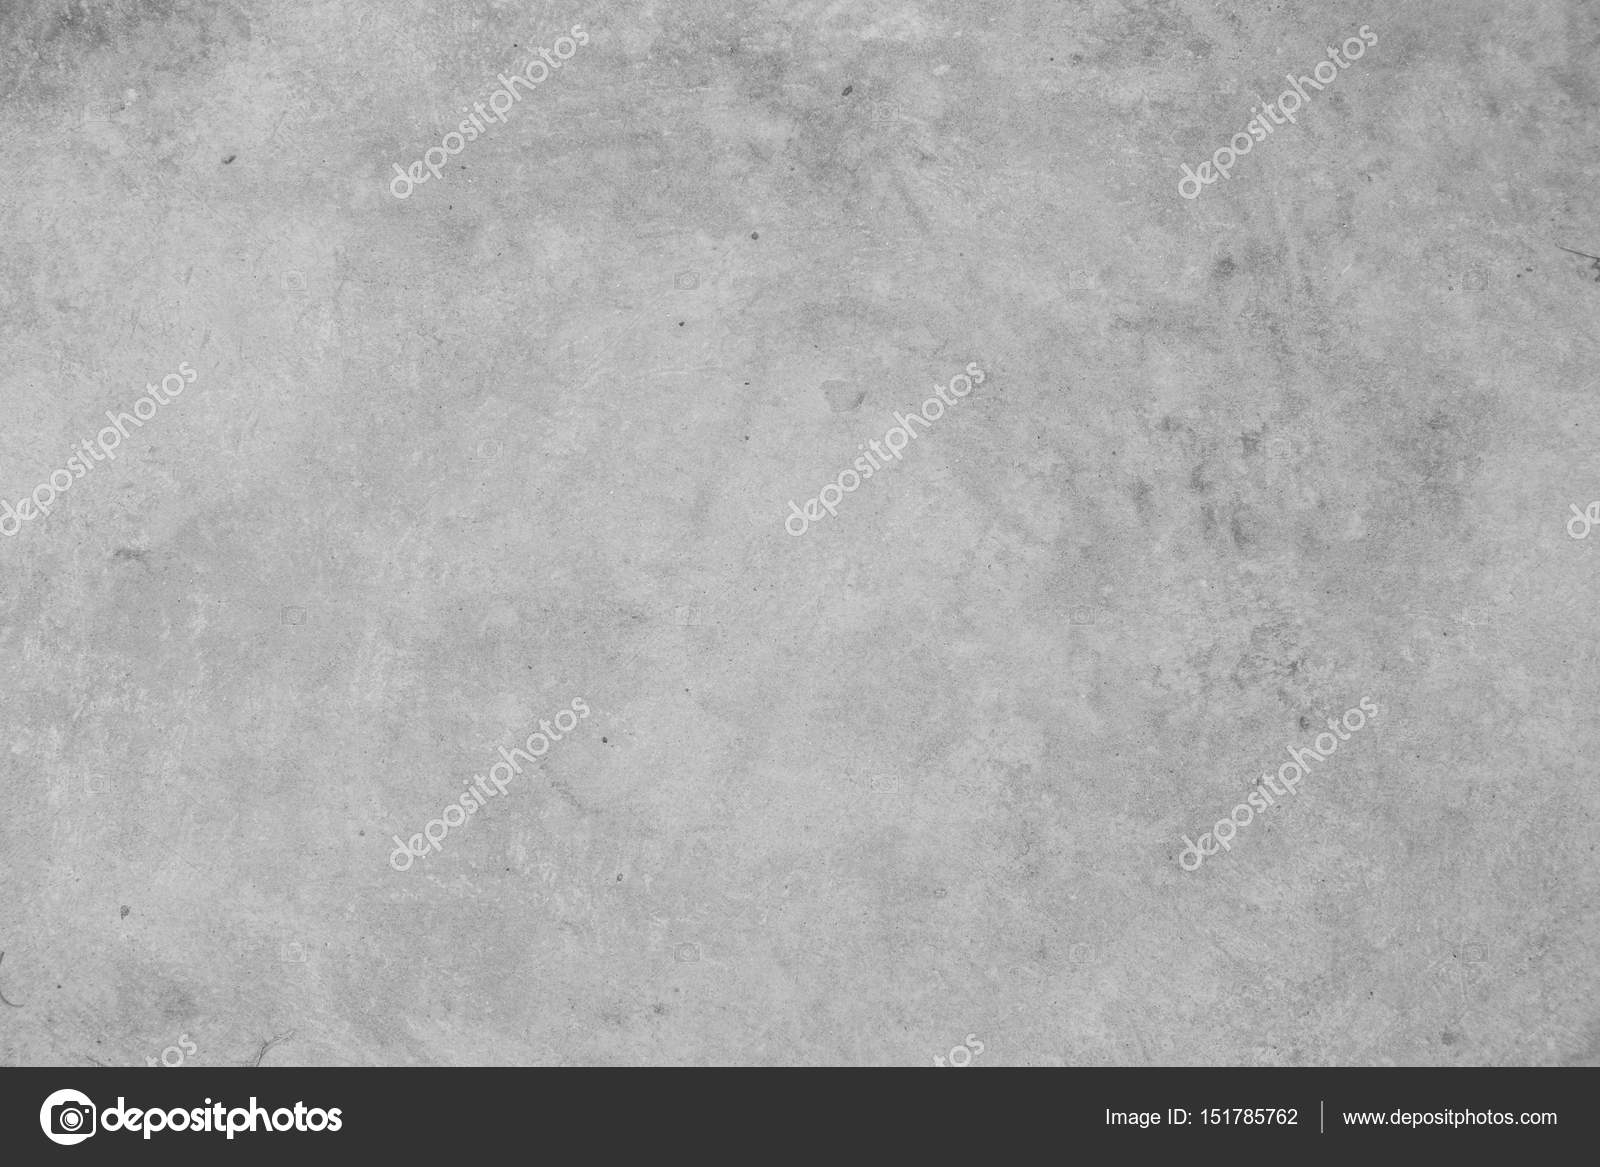 Rustic Concrete Texture Photo For Background Shabby Chic Backdrop Stock